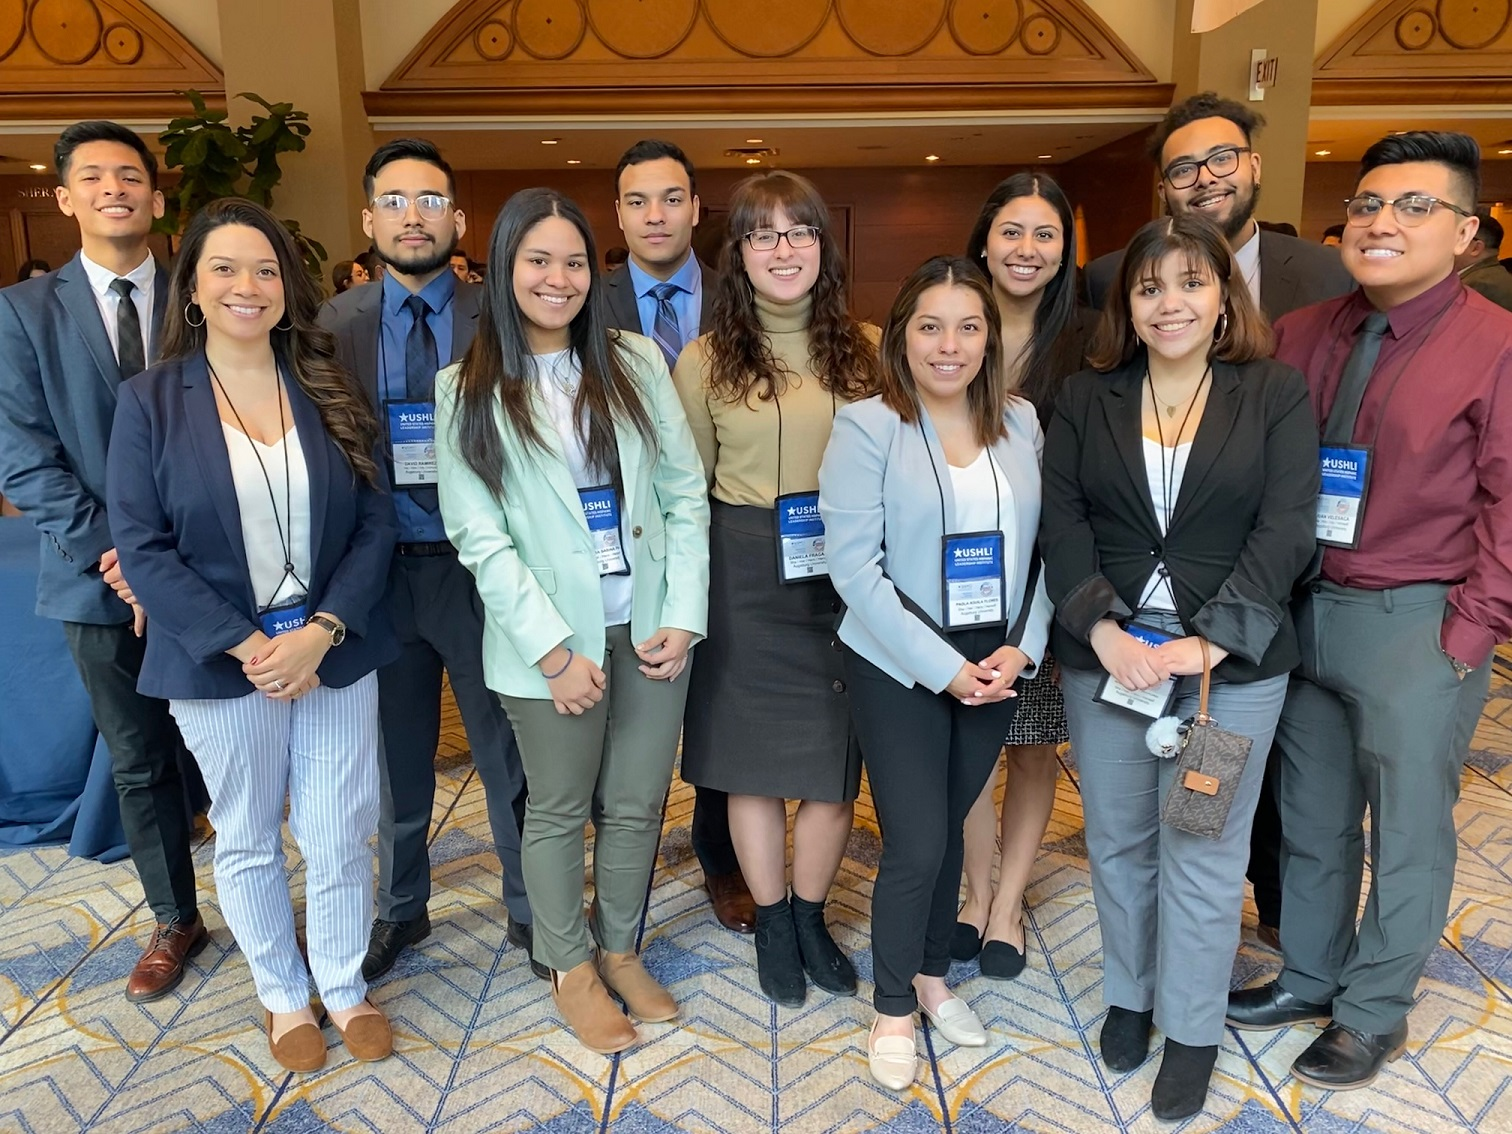 Augsburg students at the 2020 USHLI conference.